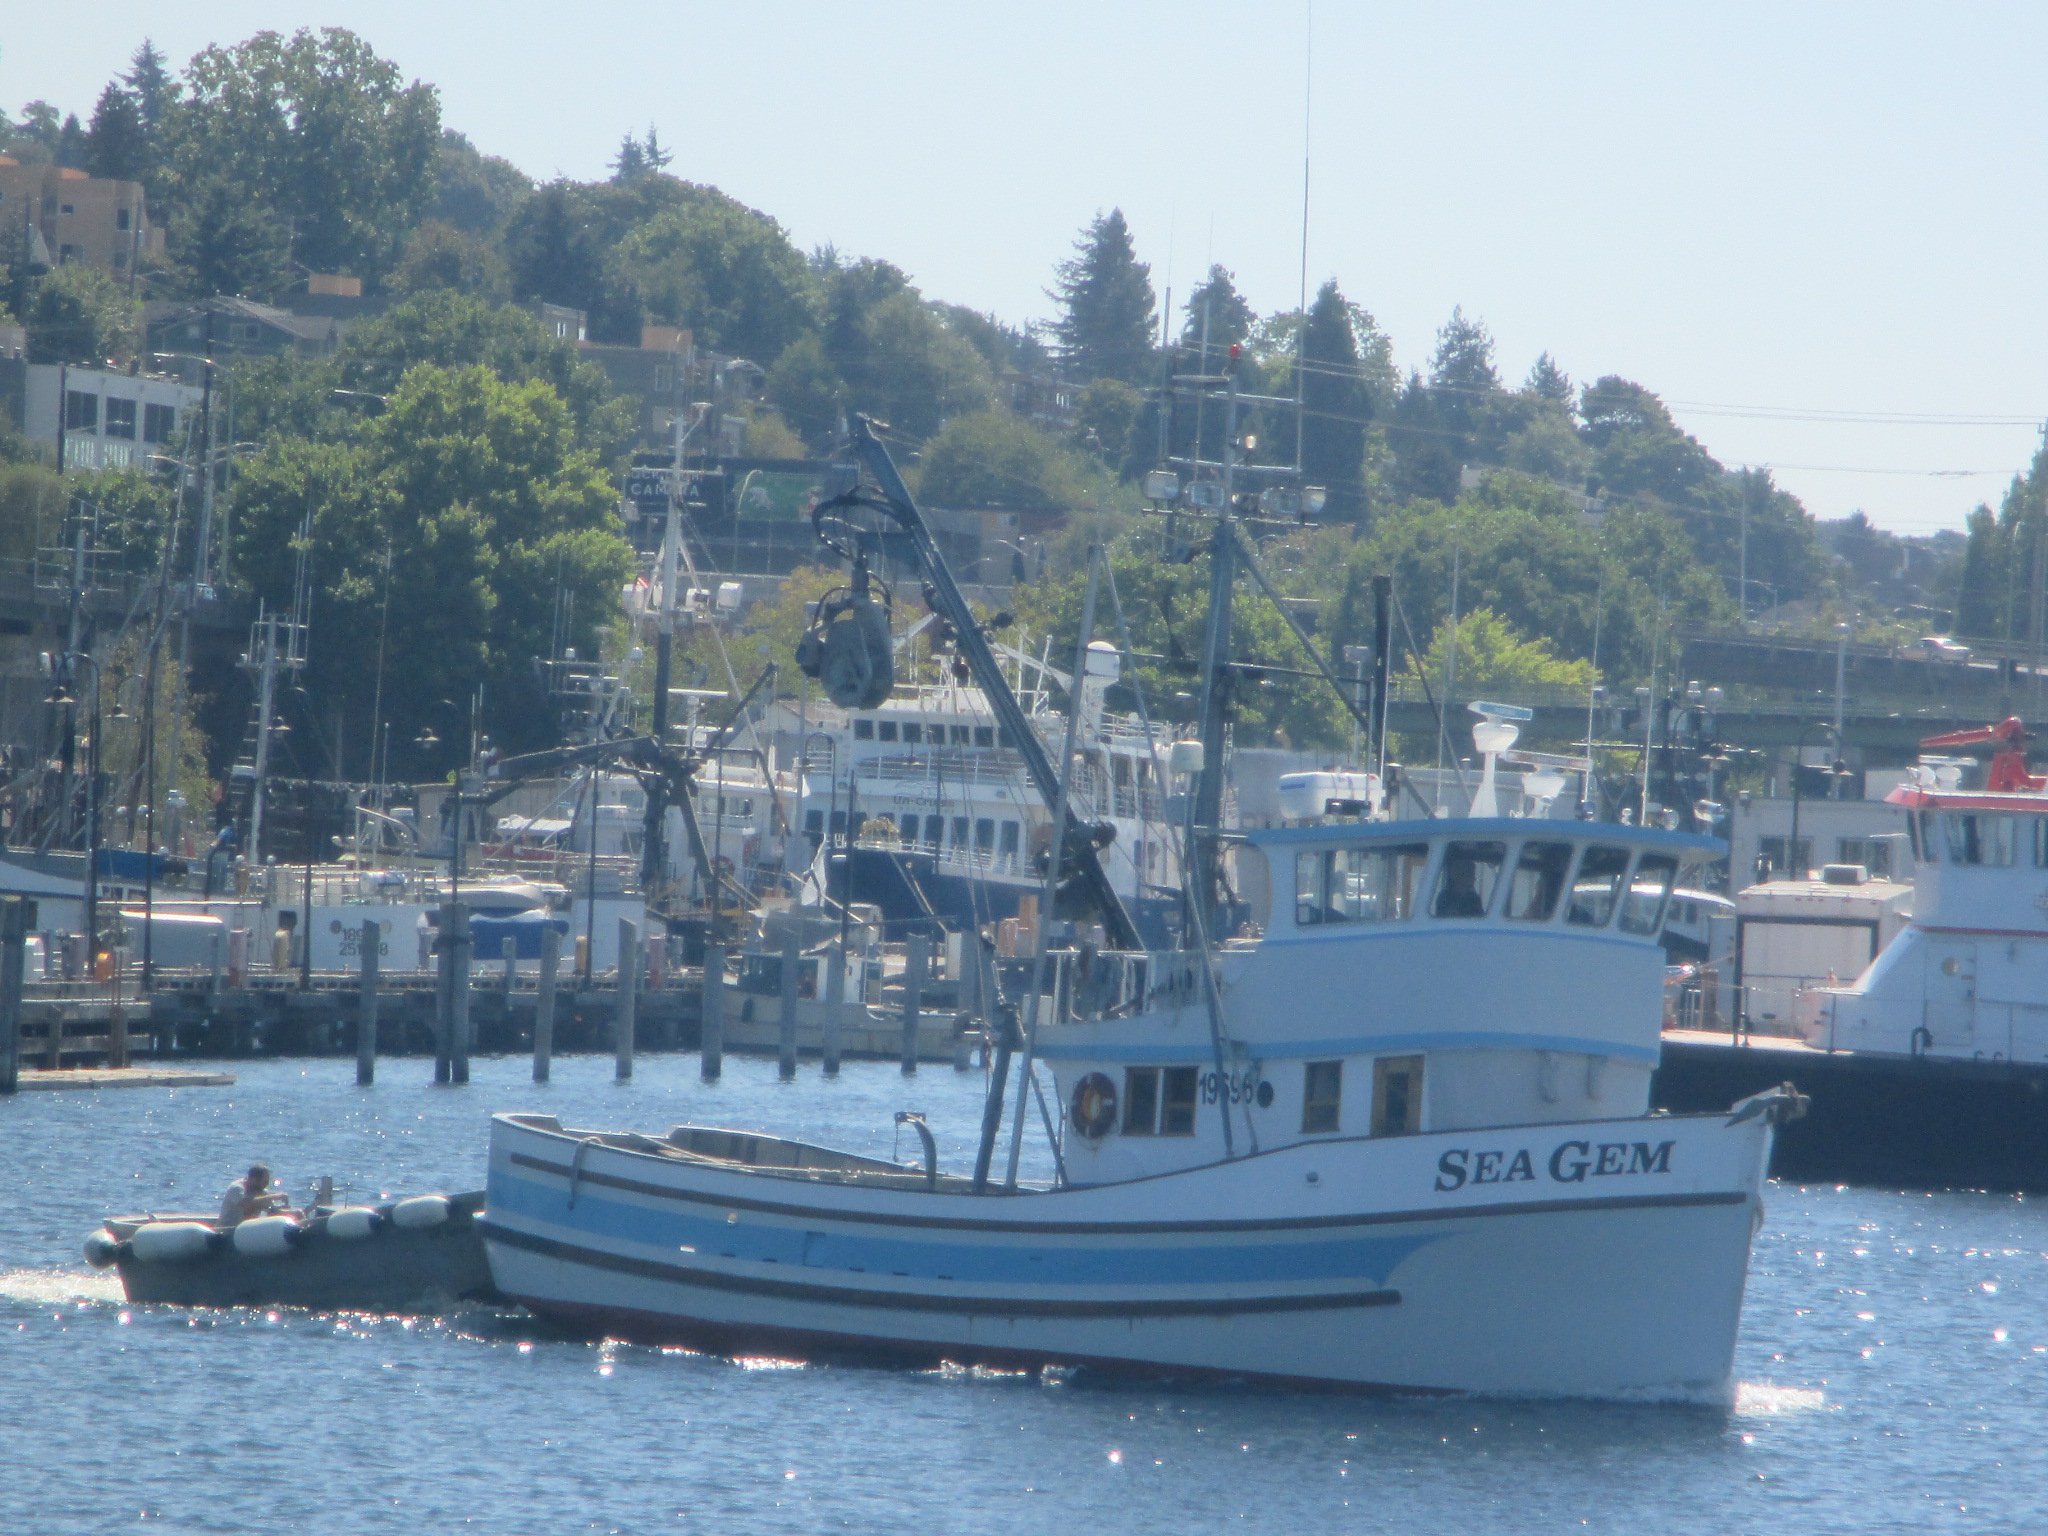 F v sea gem se ak seiner seattle ship canal salty dog for Fishing boats seattle